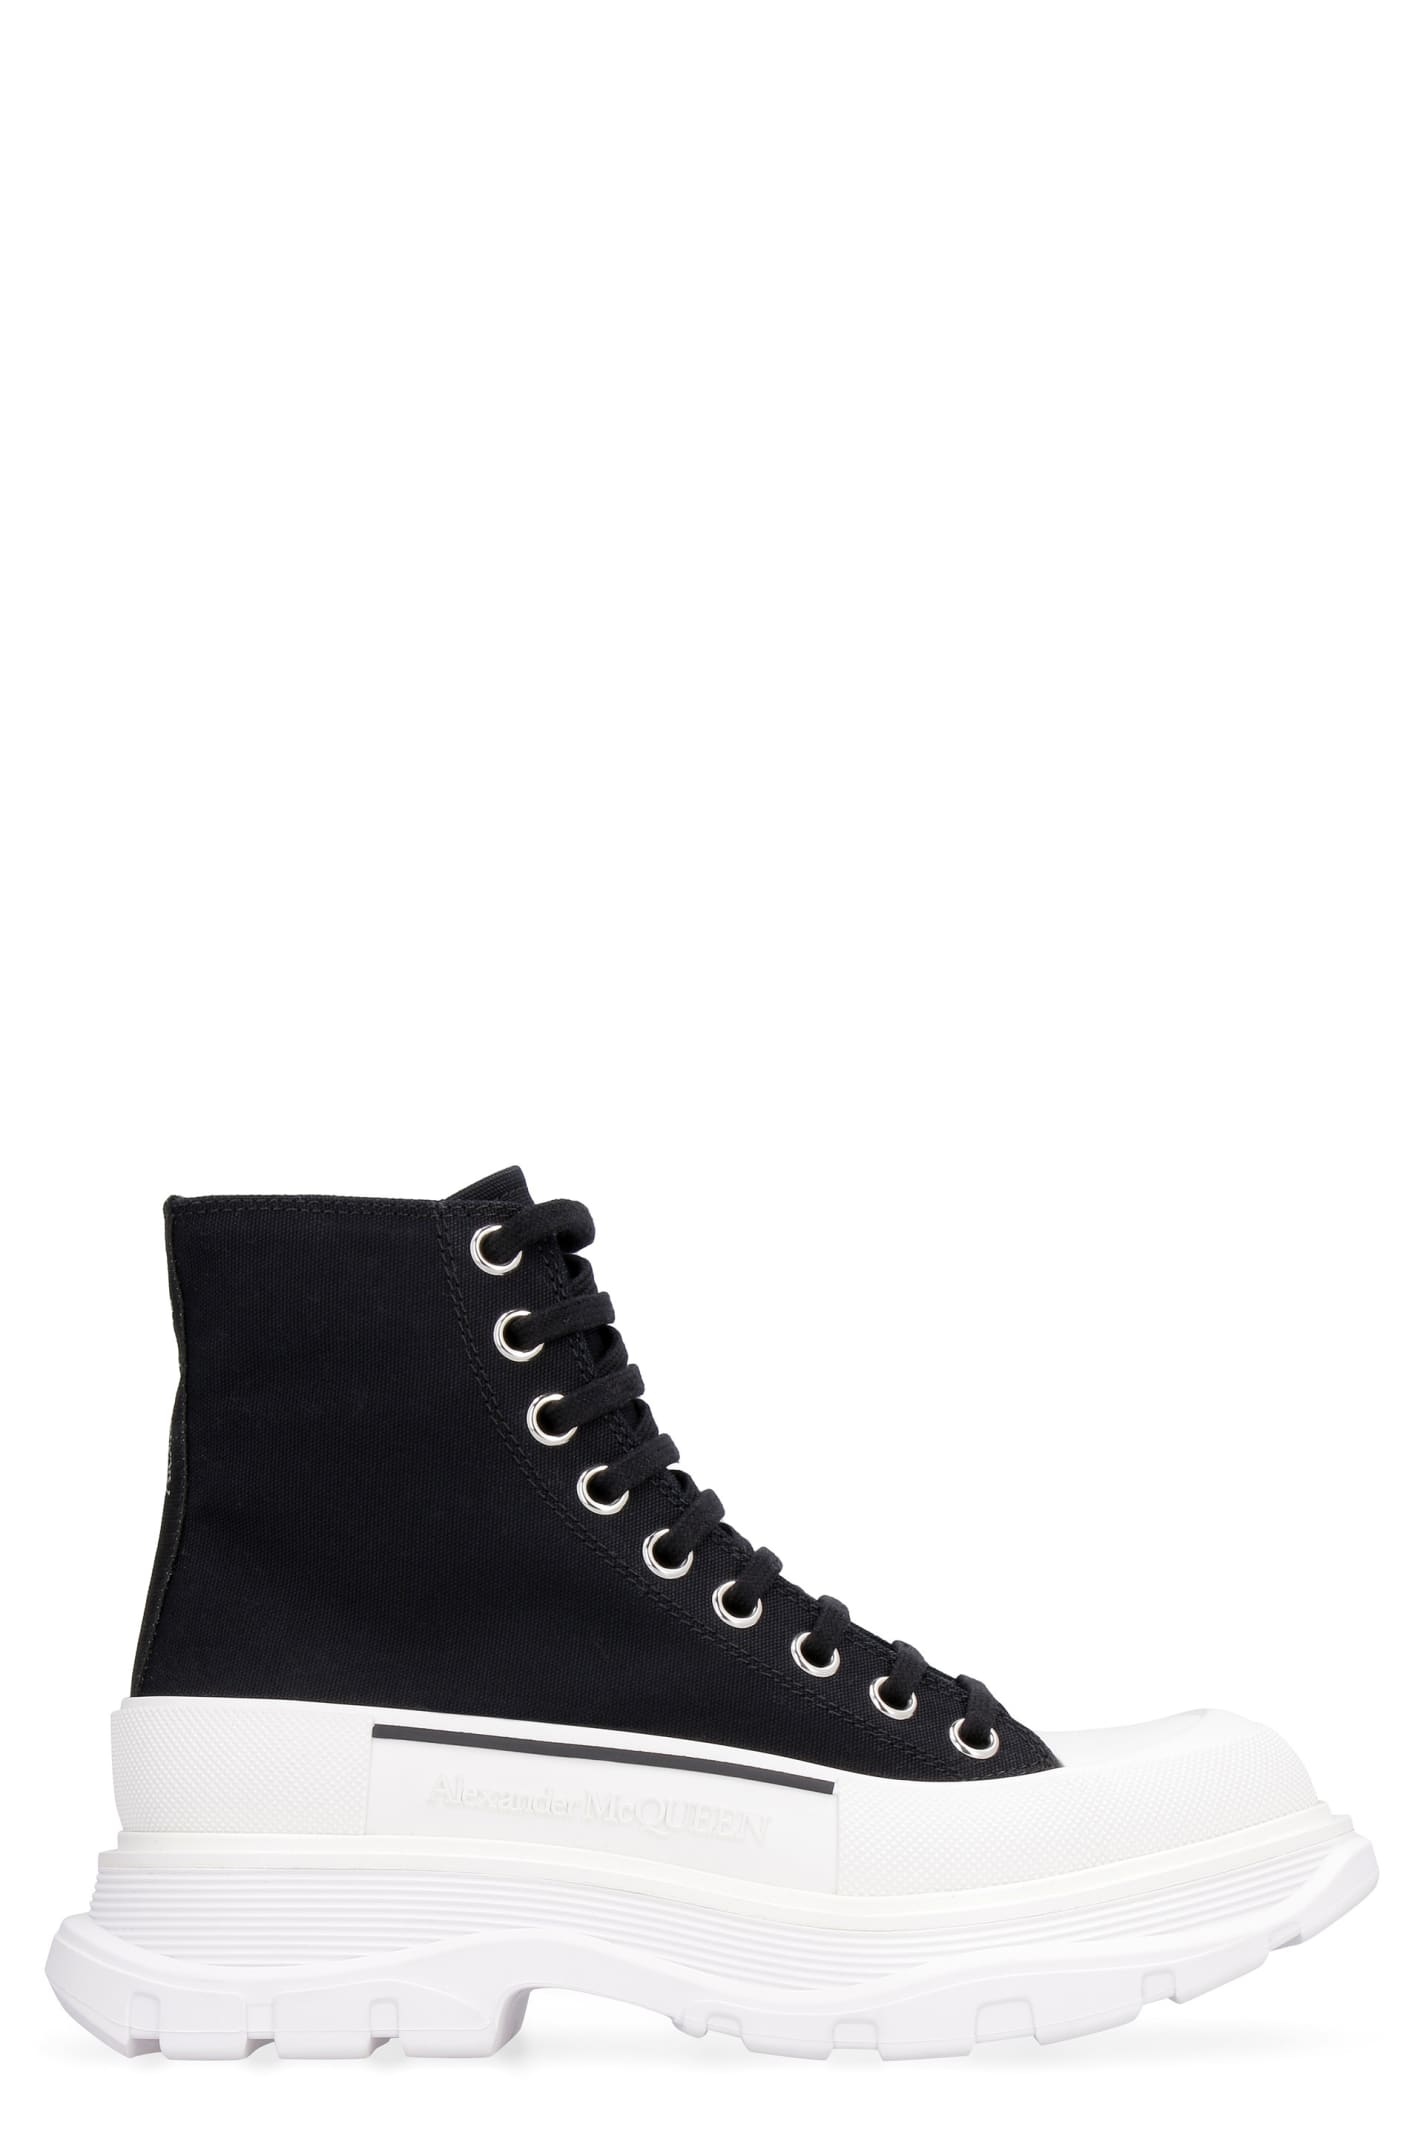 Alexander McQueen Tread Slick Lace-up Ankle Boots